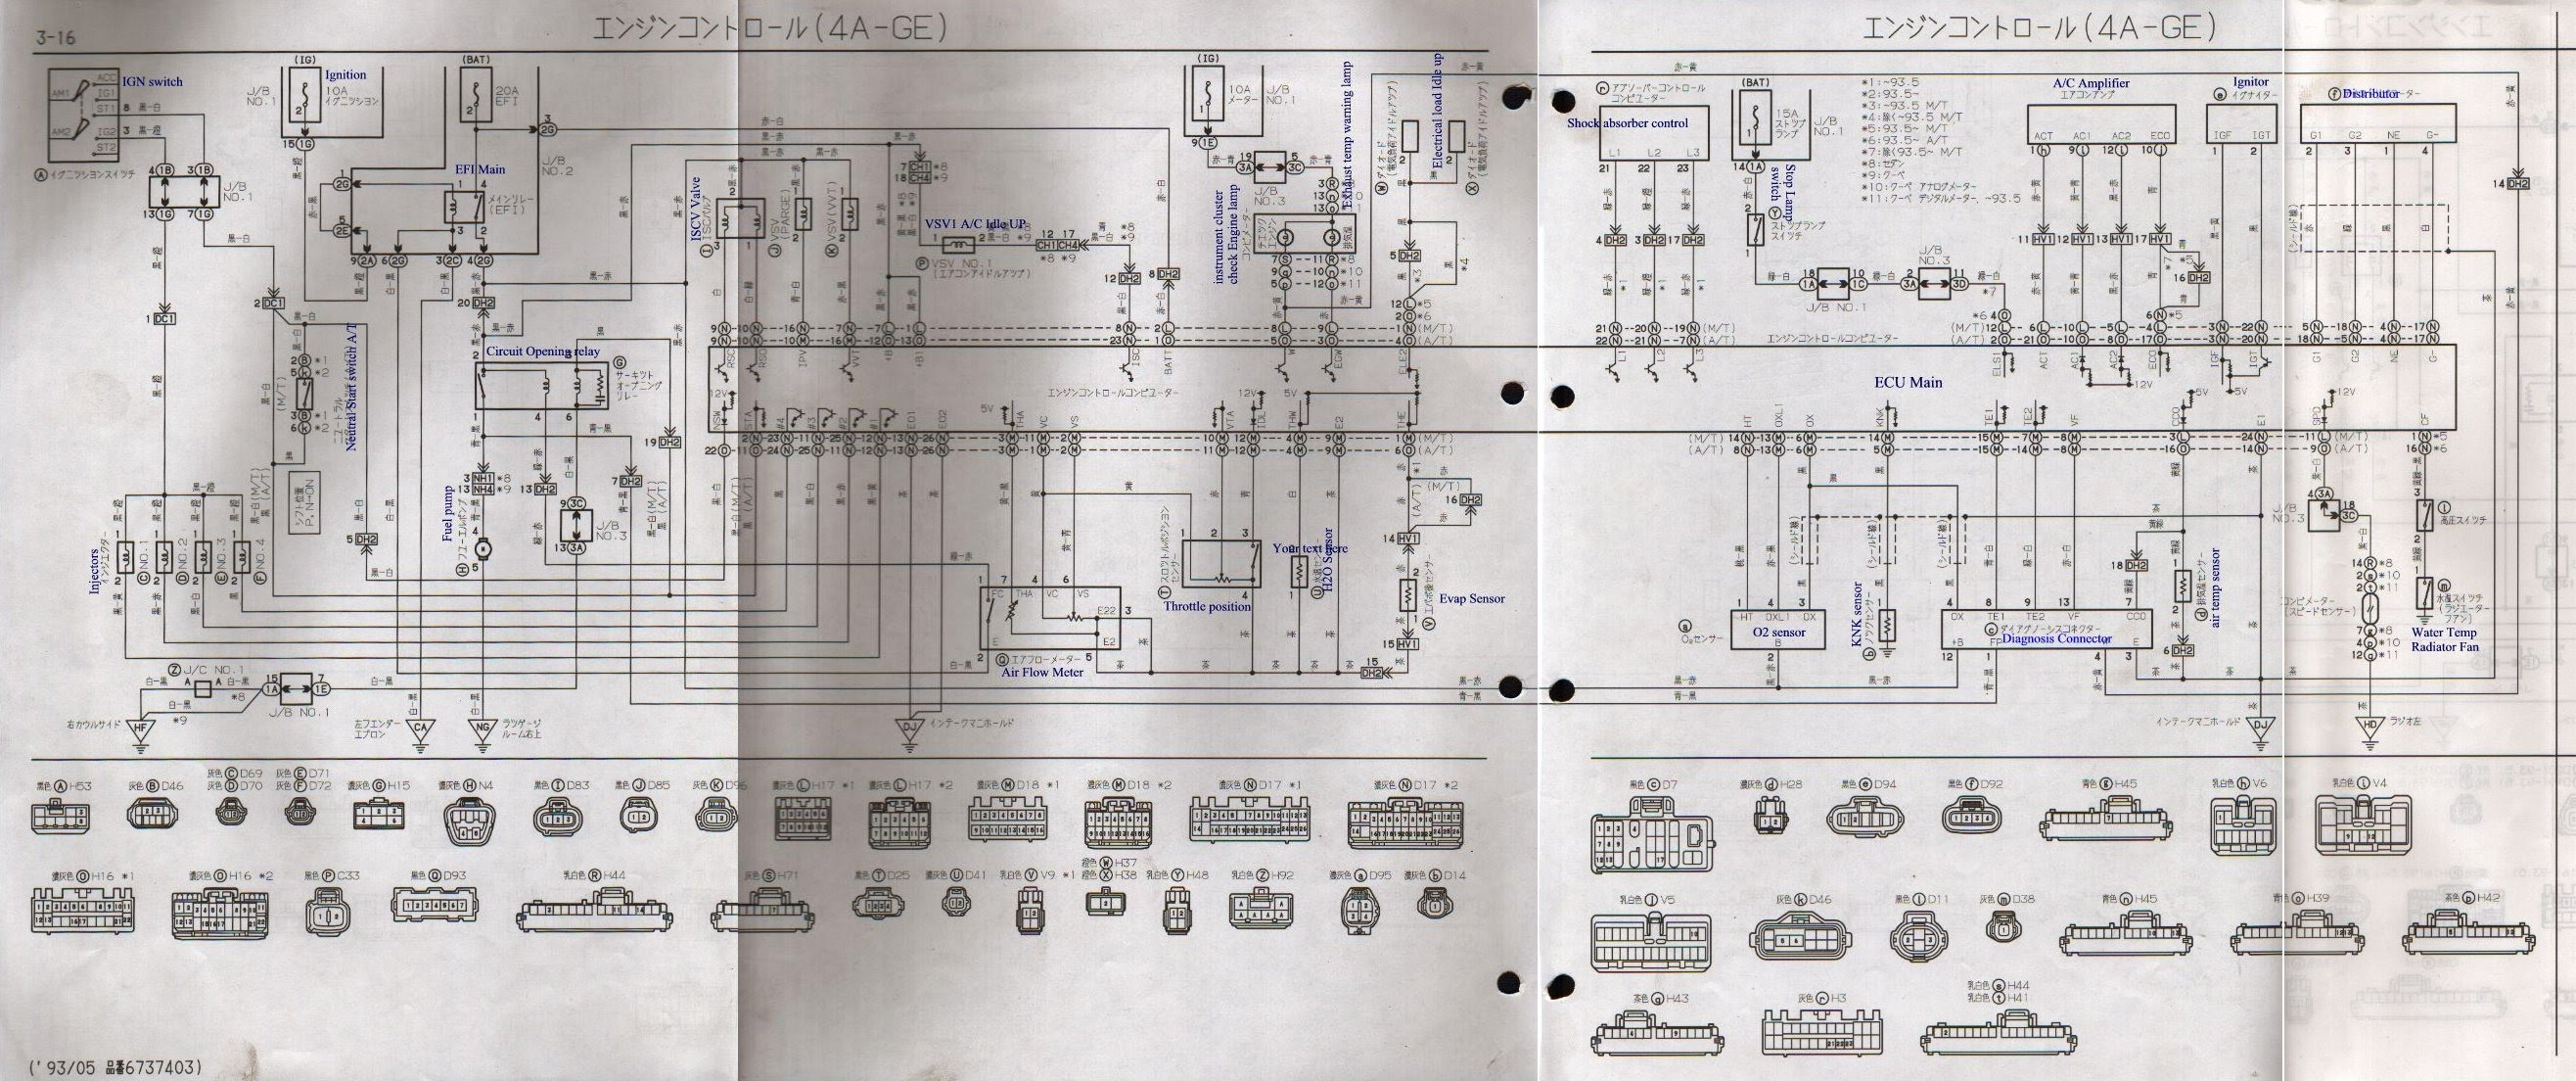 ae86 stereo wiring diagram leviton 6b42 dimmer may 2013 toyota the one you only trust always